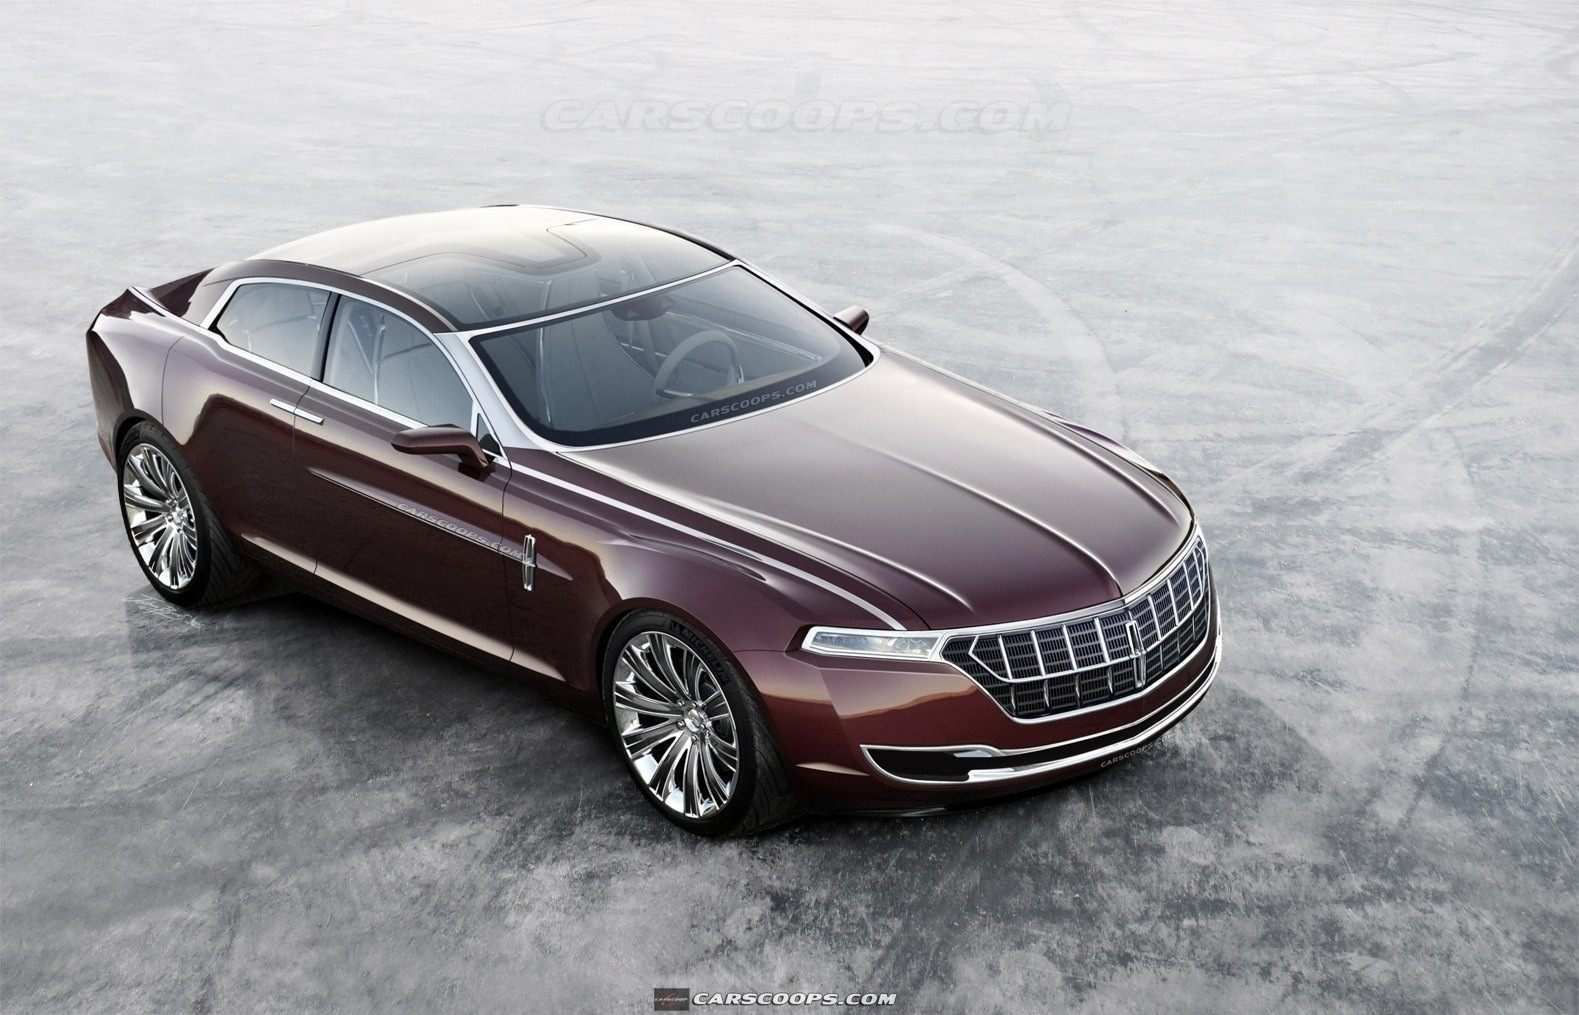 21 A Spy Shots Lincoln Mkz Sedan Price And Review